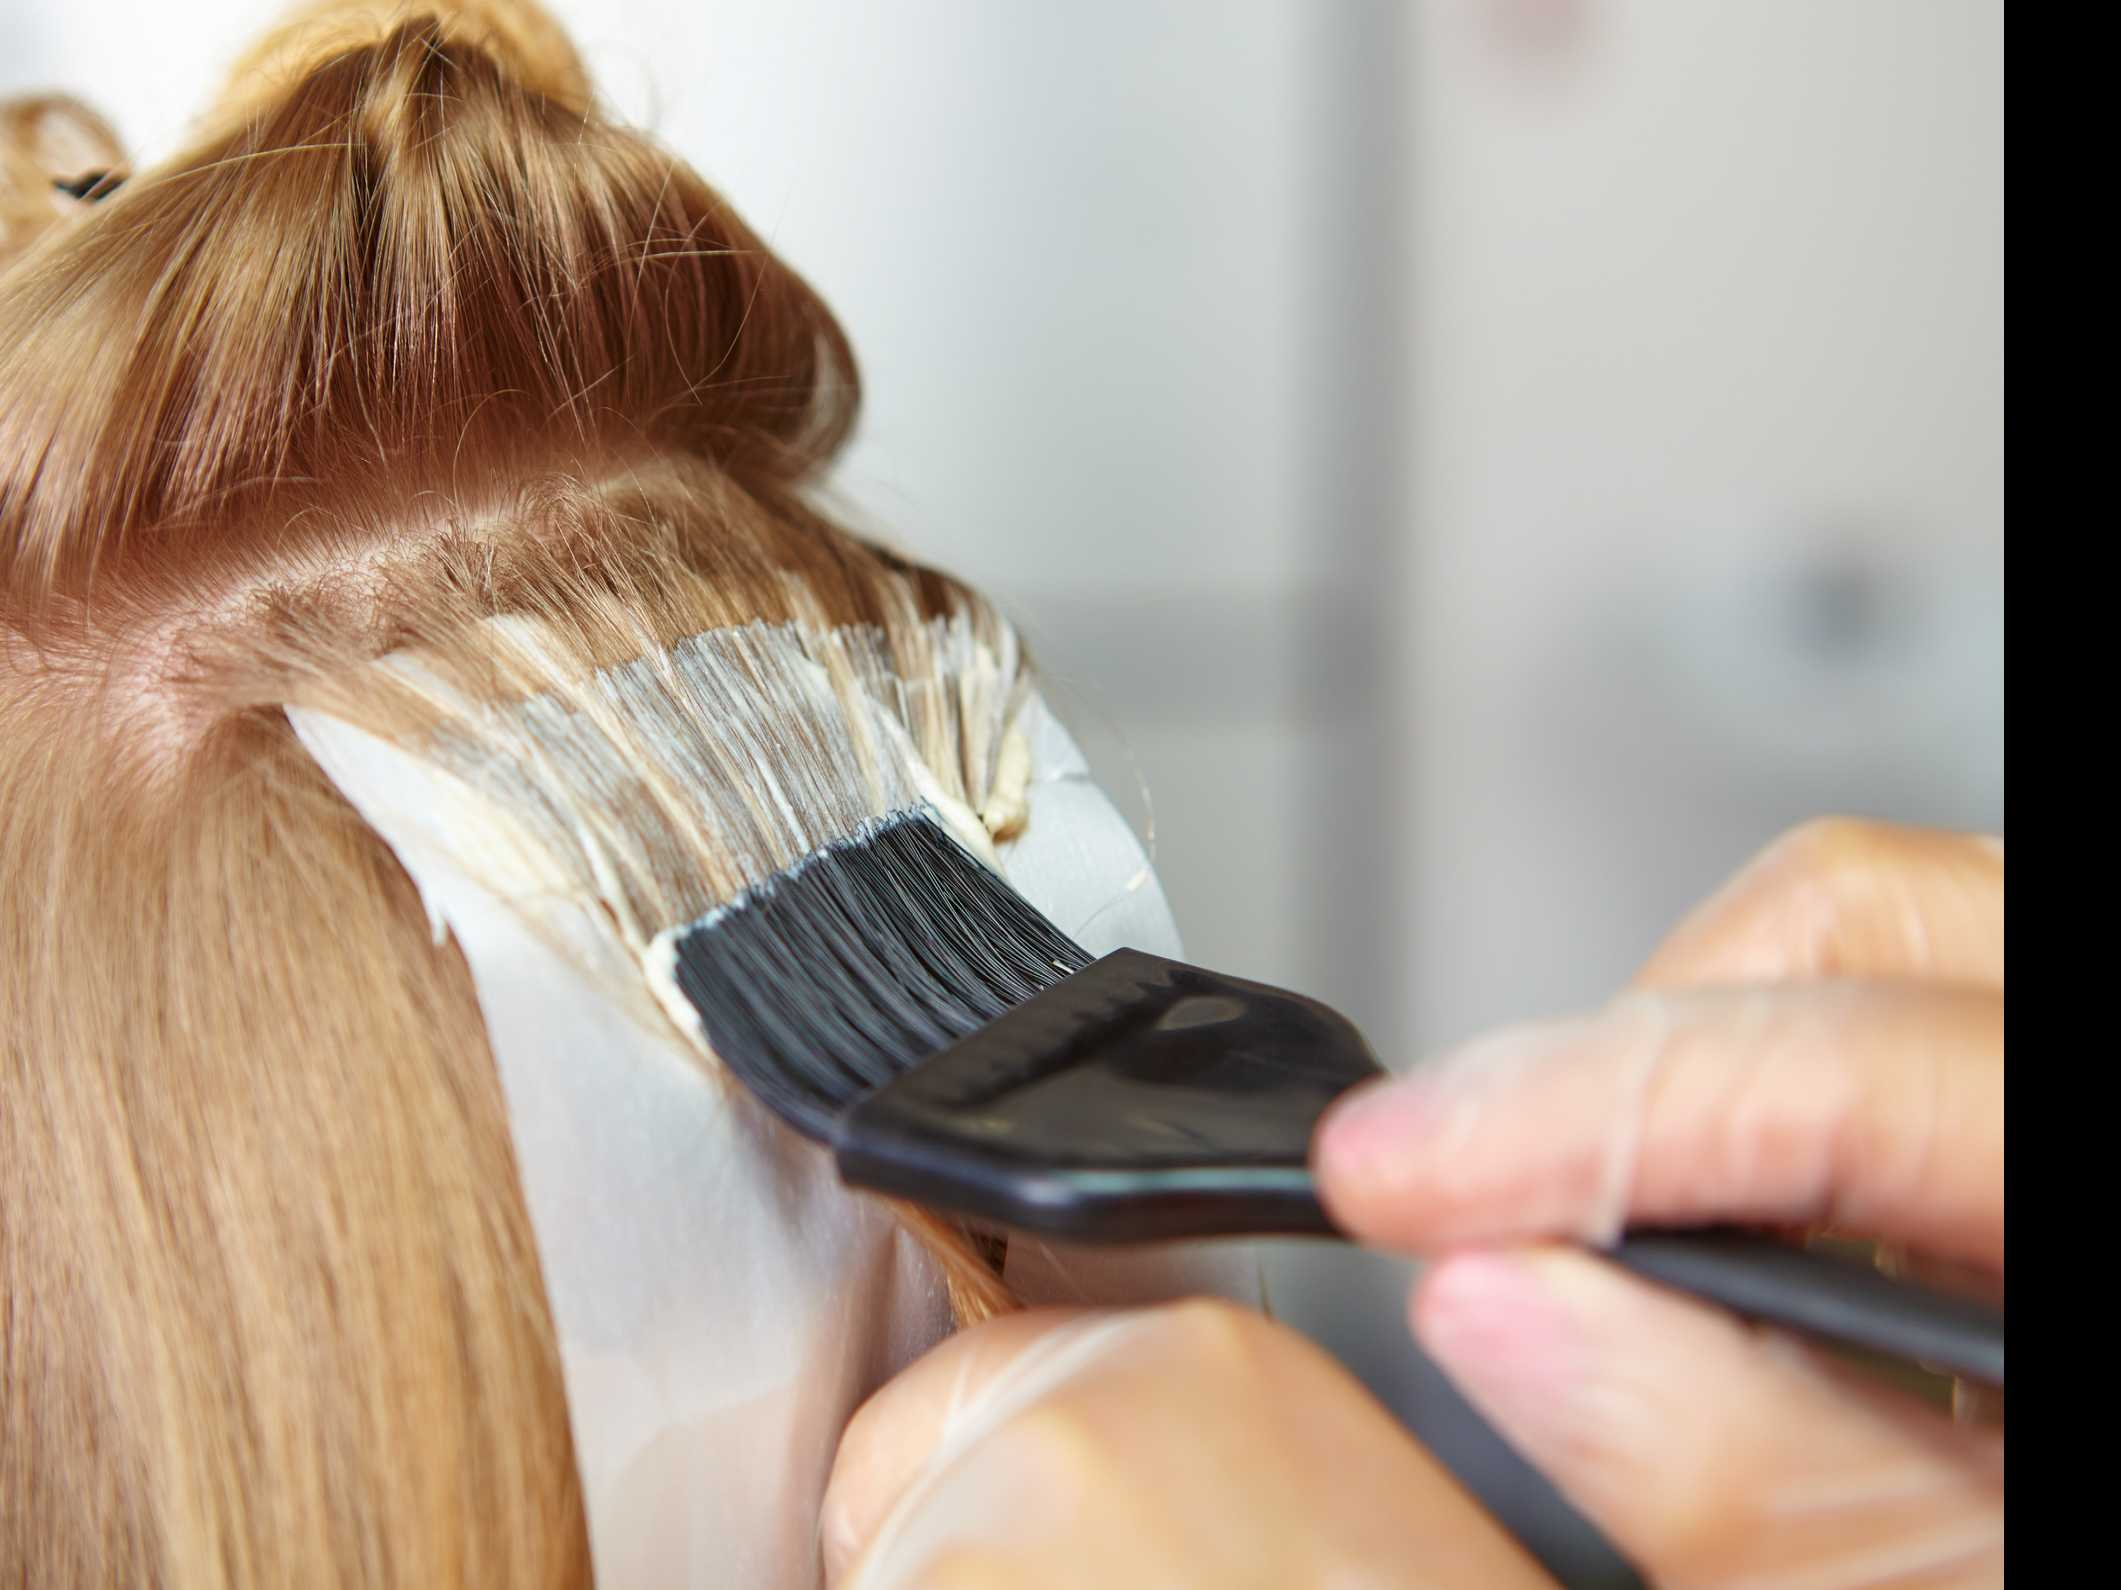 German Court: Model Deserves Damages for Disastrous Hair Dye